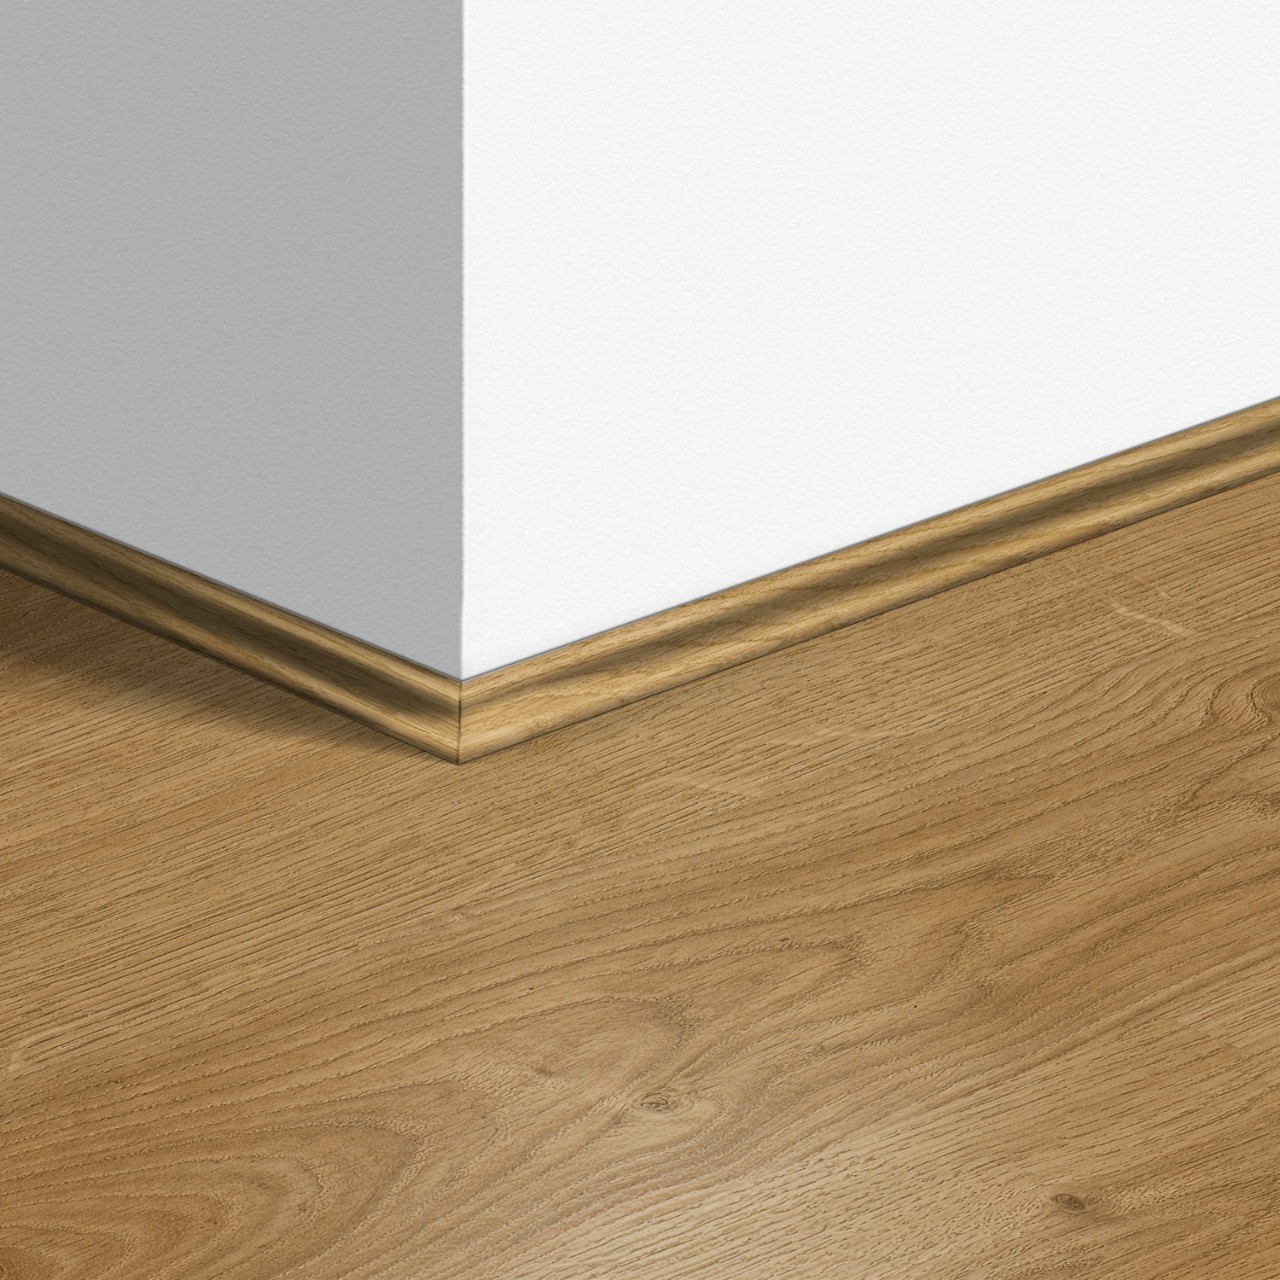 QSSCOT Laminate Accessories White oak light QSSCOT01491